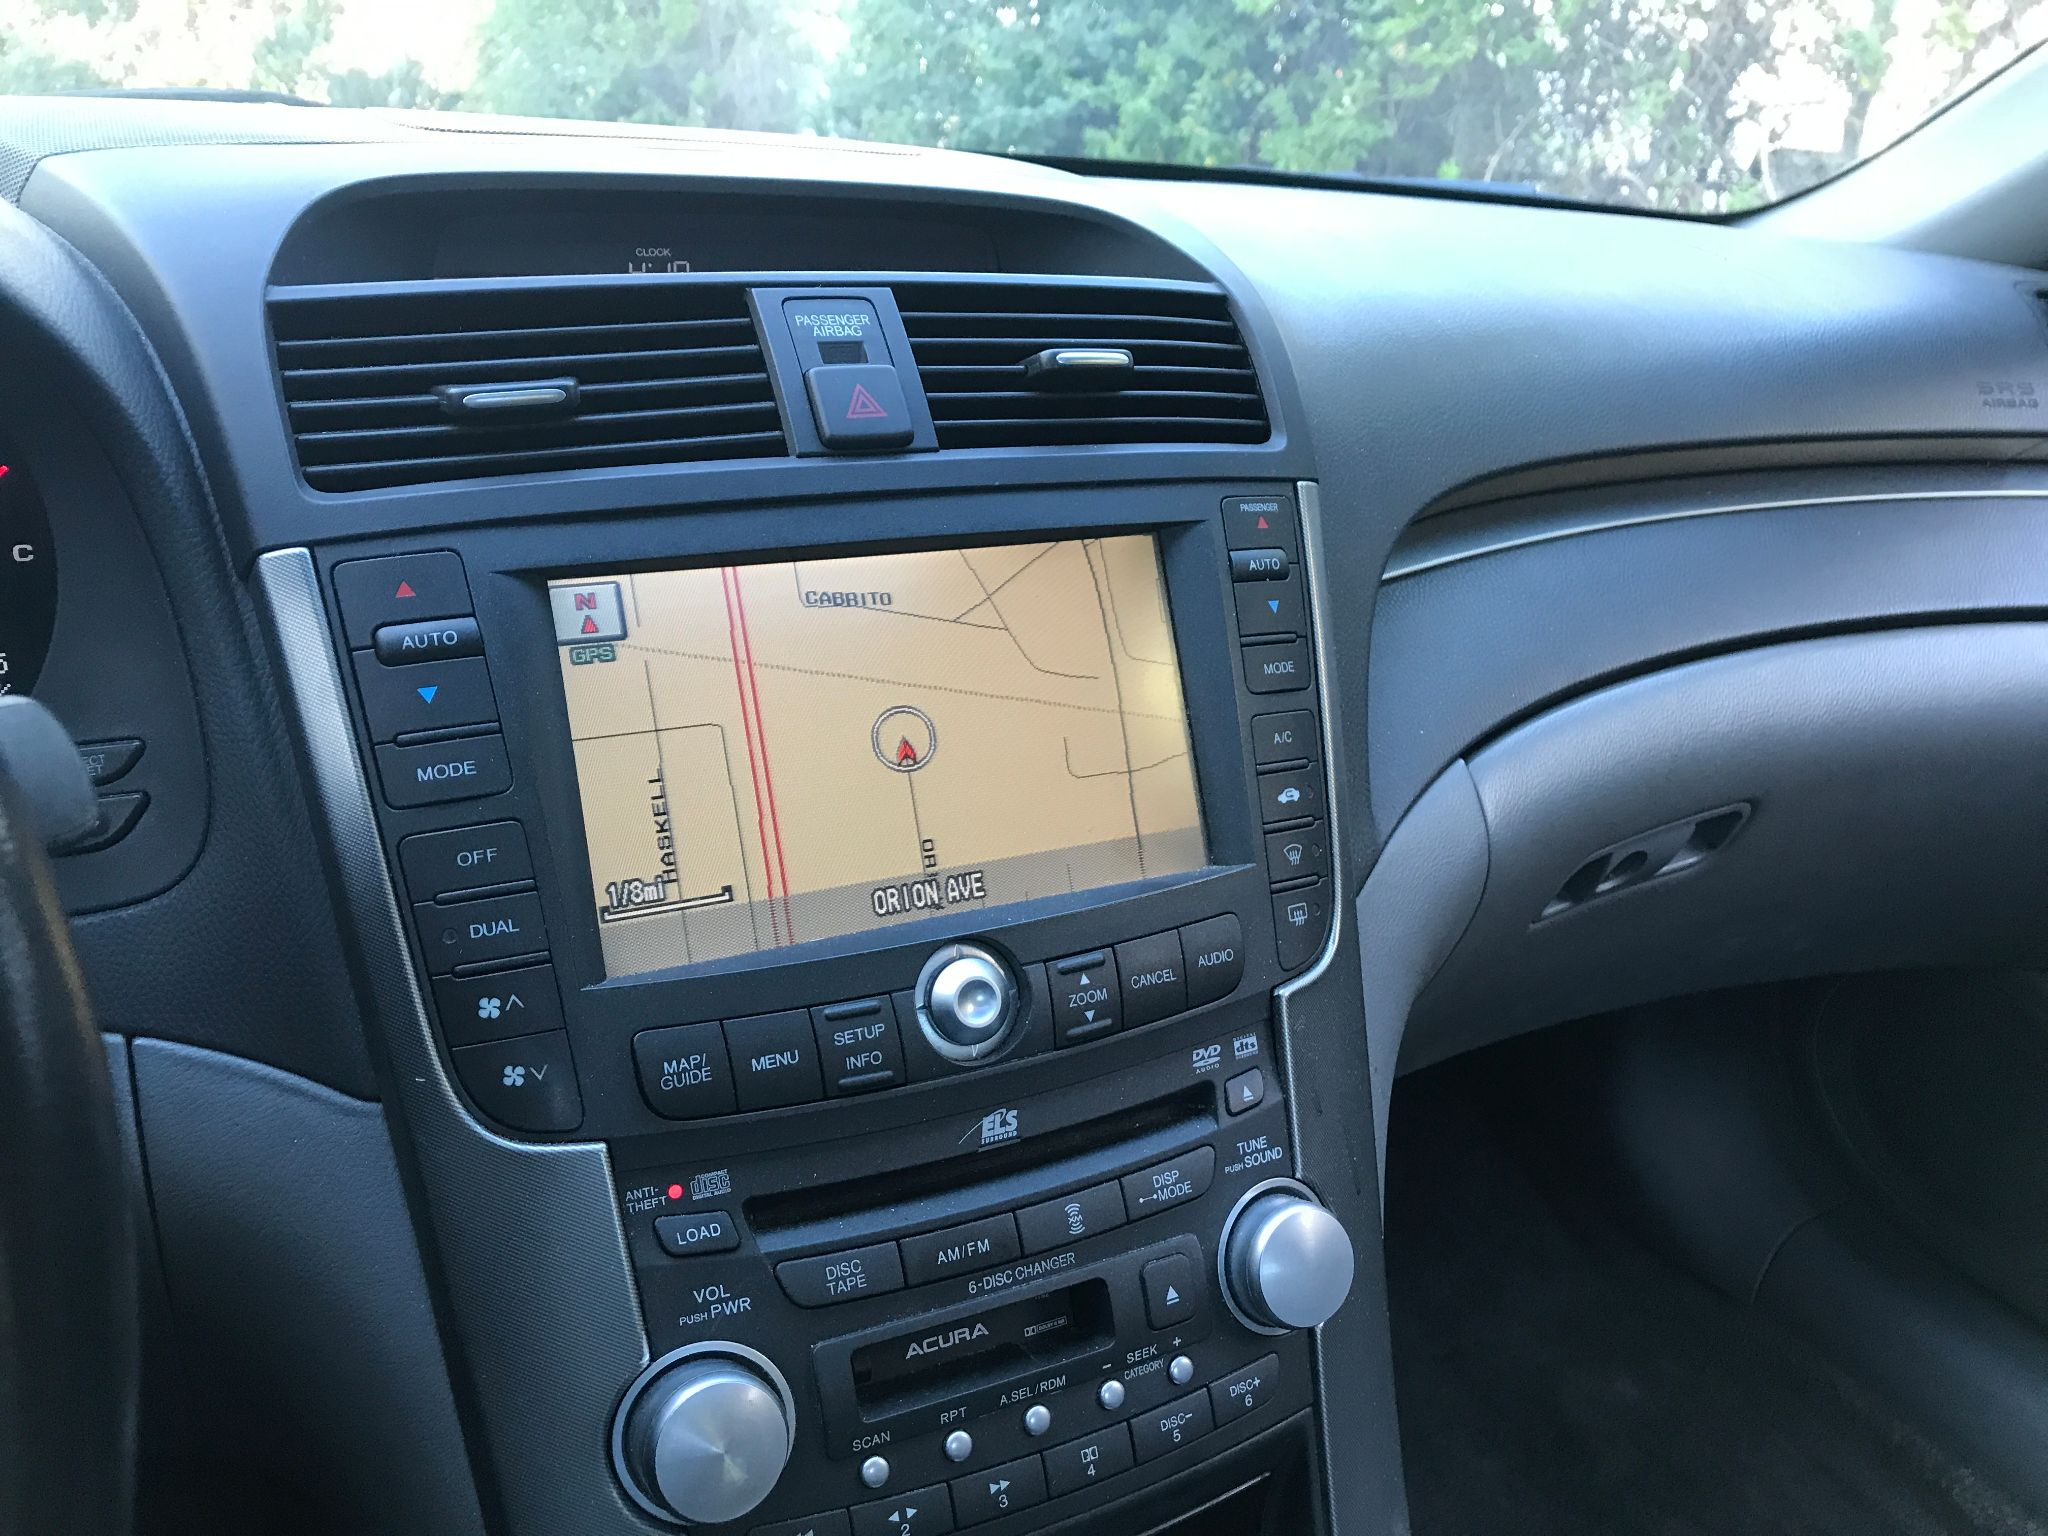 Used 2006 Acura Tl Navigation System At City Cars Warehouse Inc